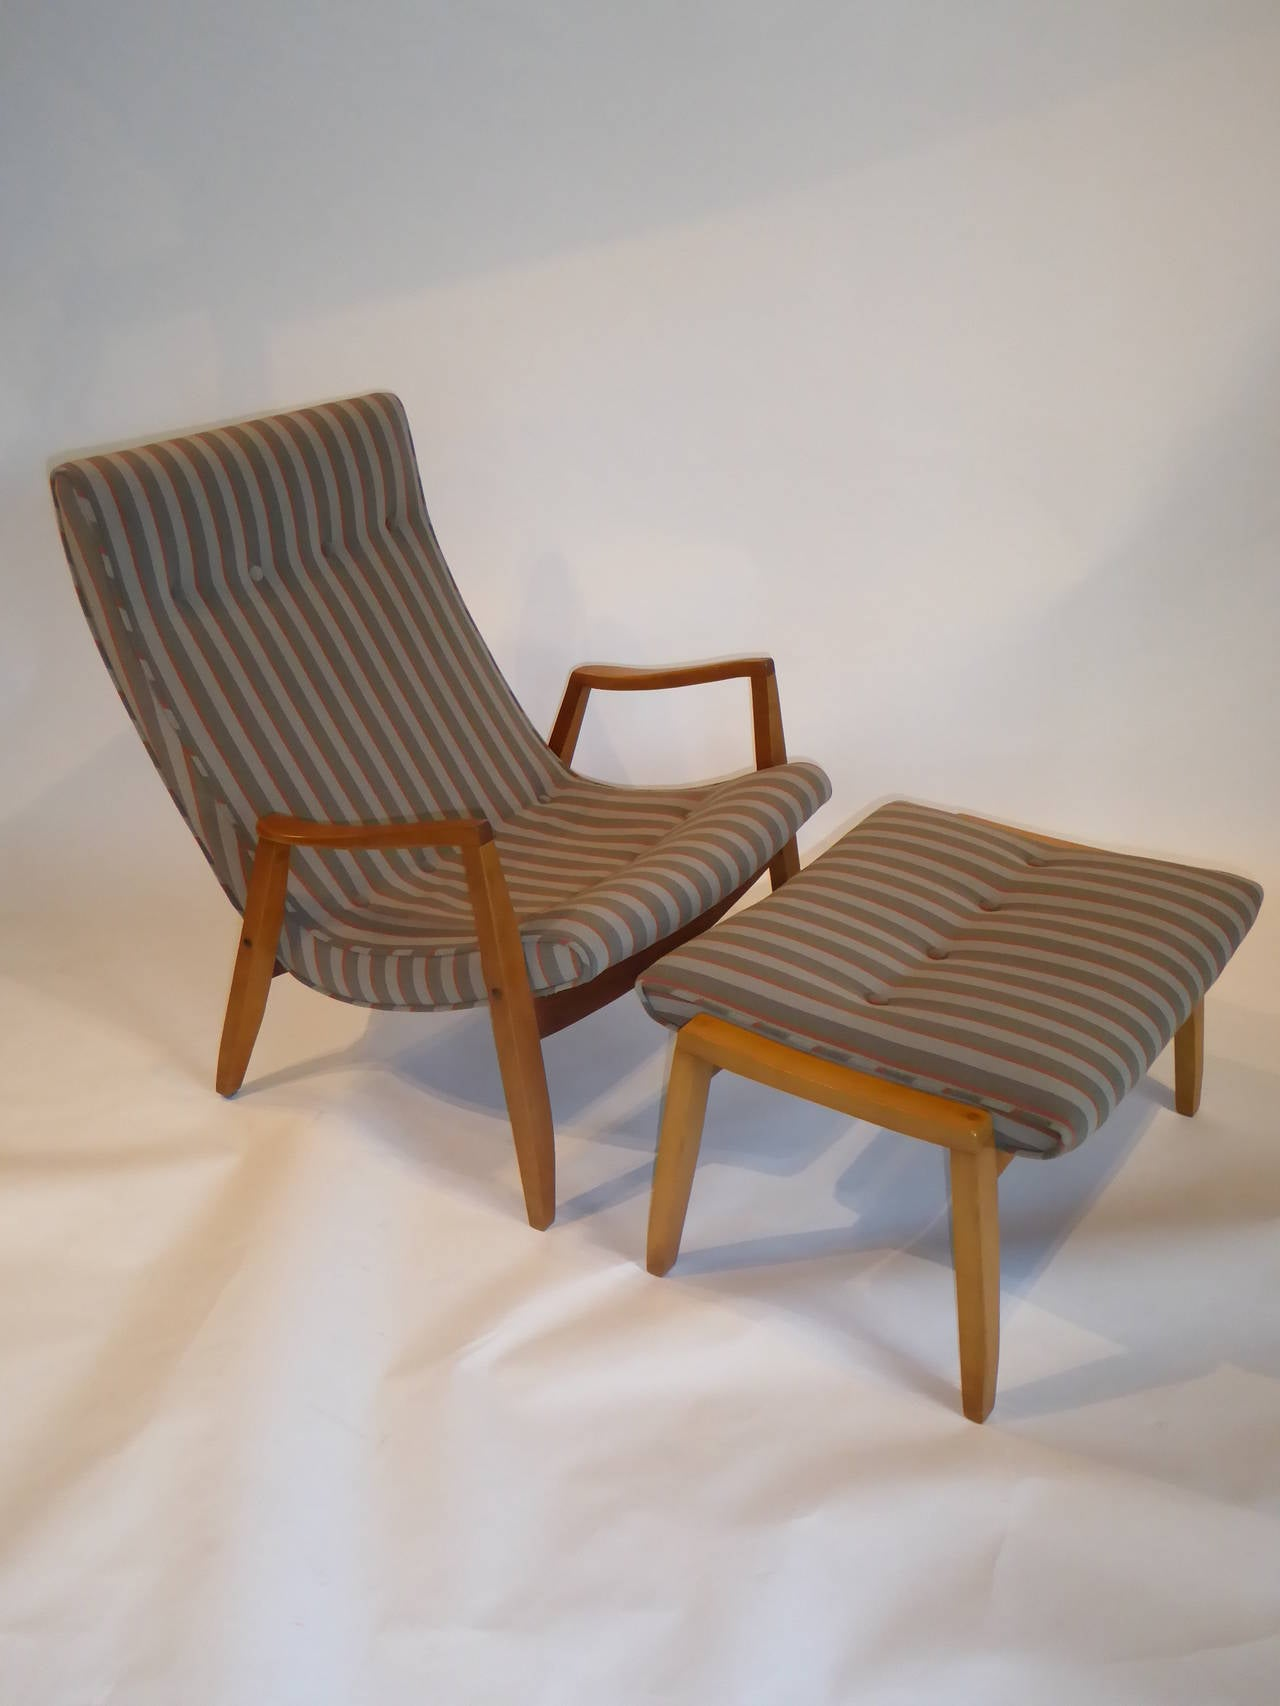 1950s Milo Baughman Scoop Lounge Chair And Ottoman At 1stdibs